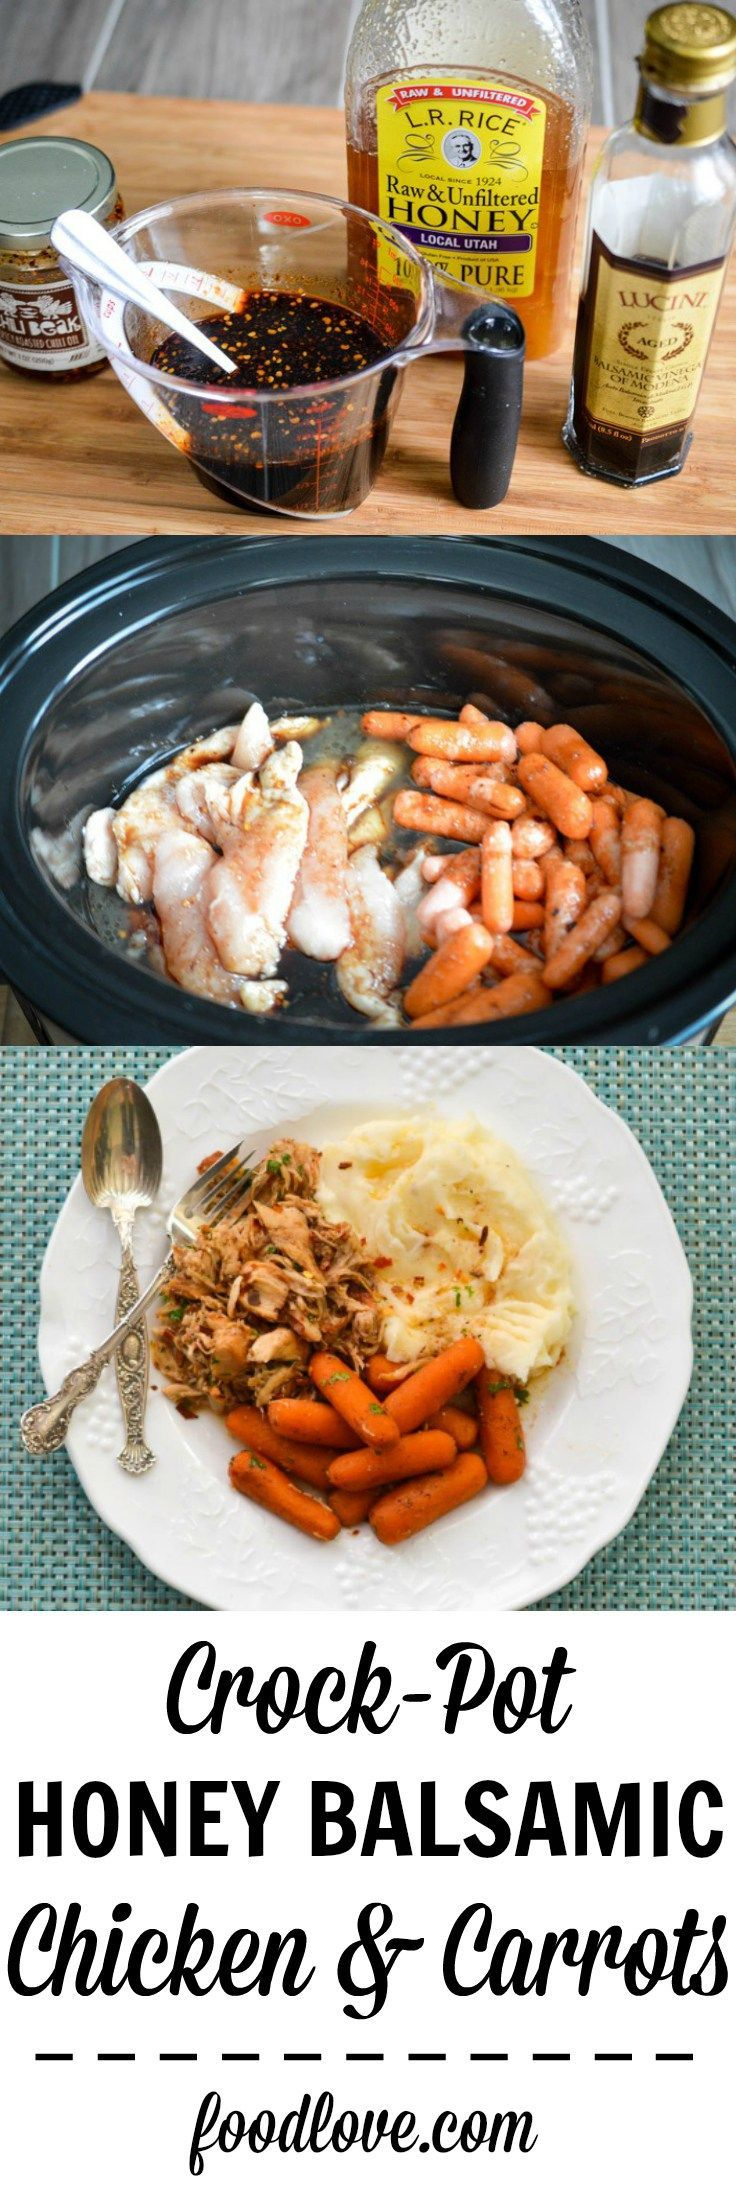 Chicken breasts and carrots get a flavor boost from balsamic vinegar, honey, garlic and chile oil for this simple, tasty crock-pot honey balsamic chicken. (Paleo Chicken Crockpot)